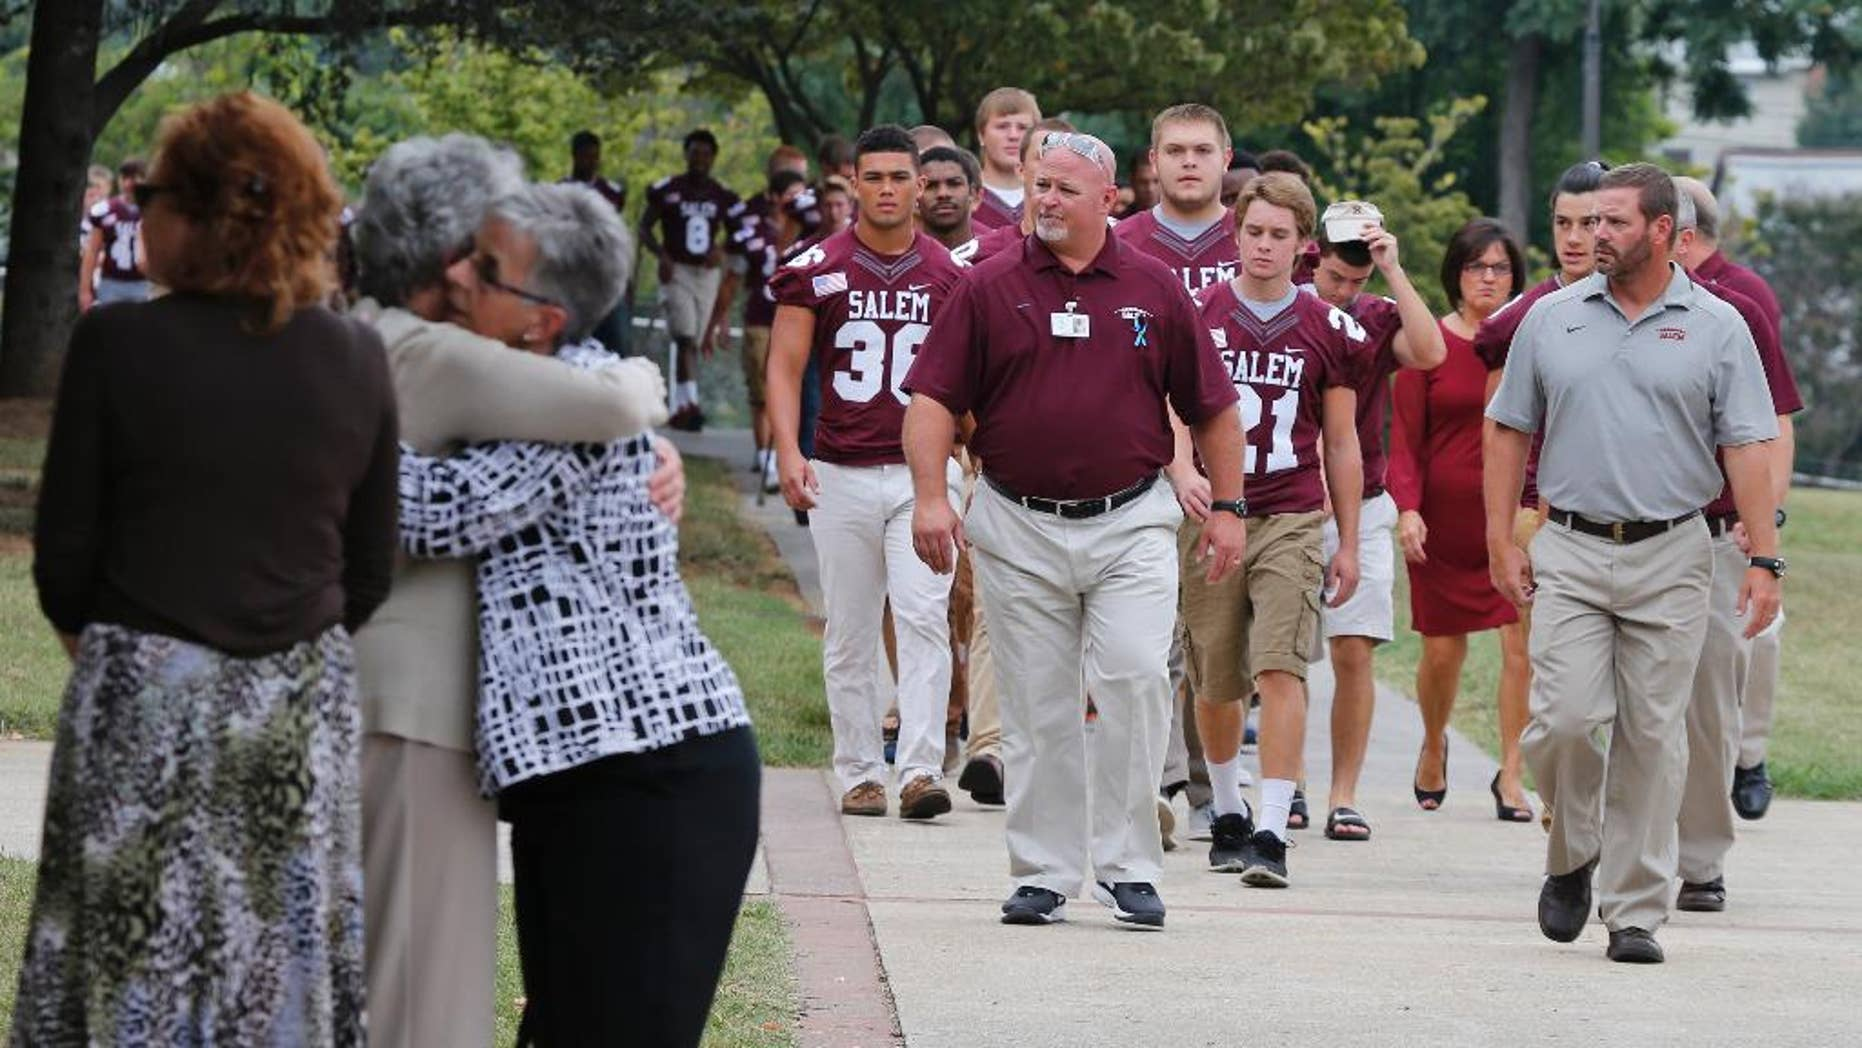 Members of the Salem High school football team arrive to remember alumnus WDBJ-TV cameraman Adam Ward, as mourners hug at Salem High School in Salem, Va., Monday, Aug. 31, 2015. Ward and reporter Alison Parker were gunned down by a former co-worker during a live shot last week. Salem High School opened its doors to the community Monday to commemorate the life of alumnus Ward. (AP Photo/Steve Helber)